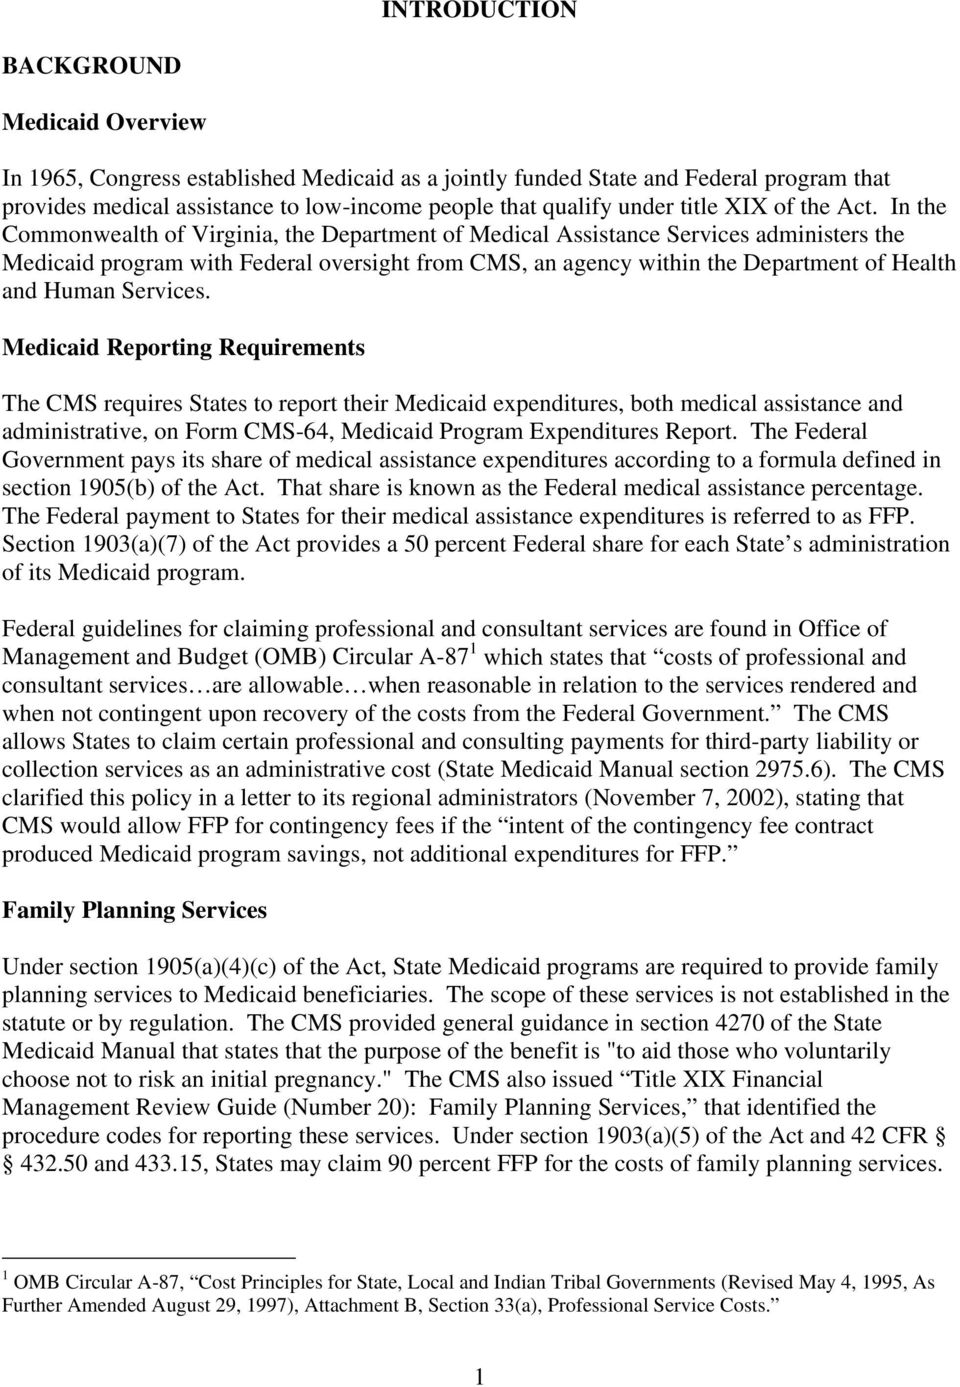 In the Commonwealth of Virginia, the Department of Medical Assistance Services administers the Medicaid program with Federal oversight from CMS, an agency within the Department of Health and Human